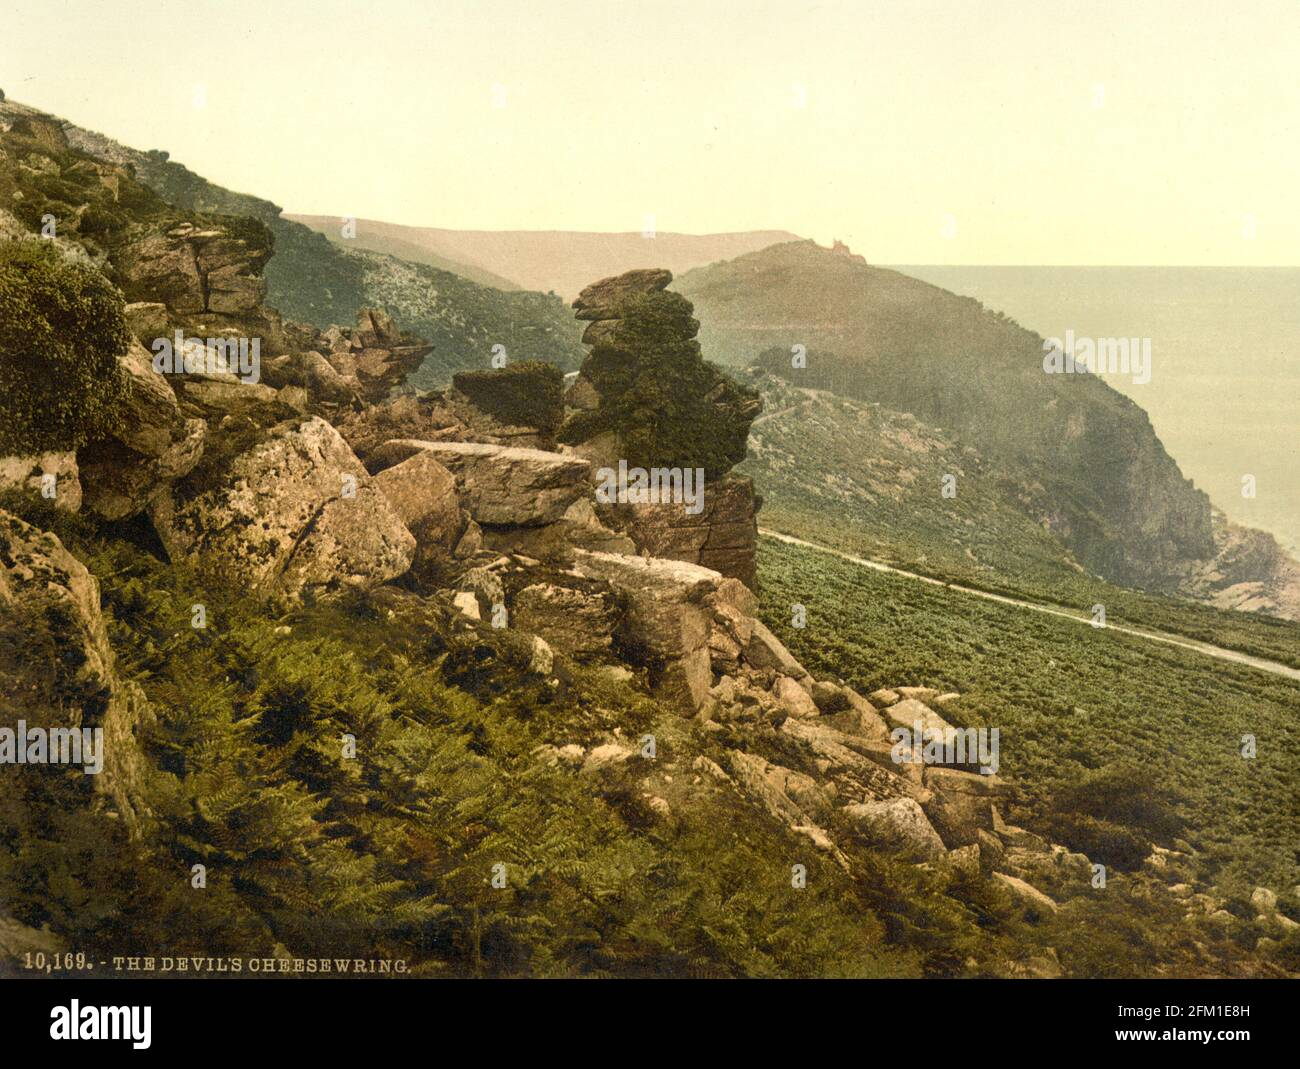 The Devil's Cheese wring in the Valley of Rocks on Exmoor bei Lynton in Devon um 1890-1900 Stockfoto